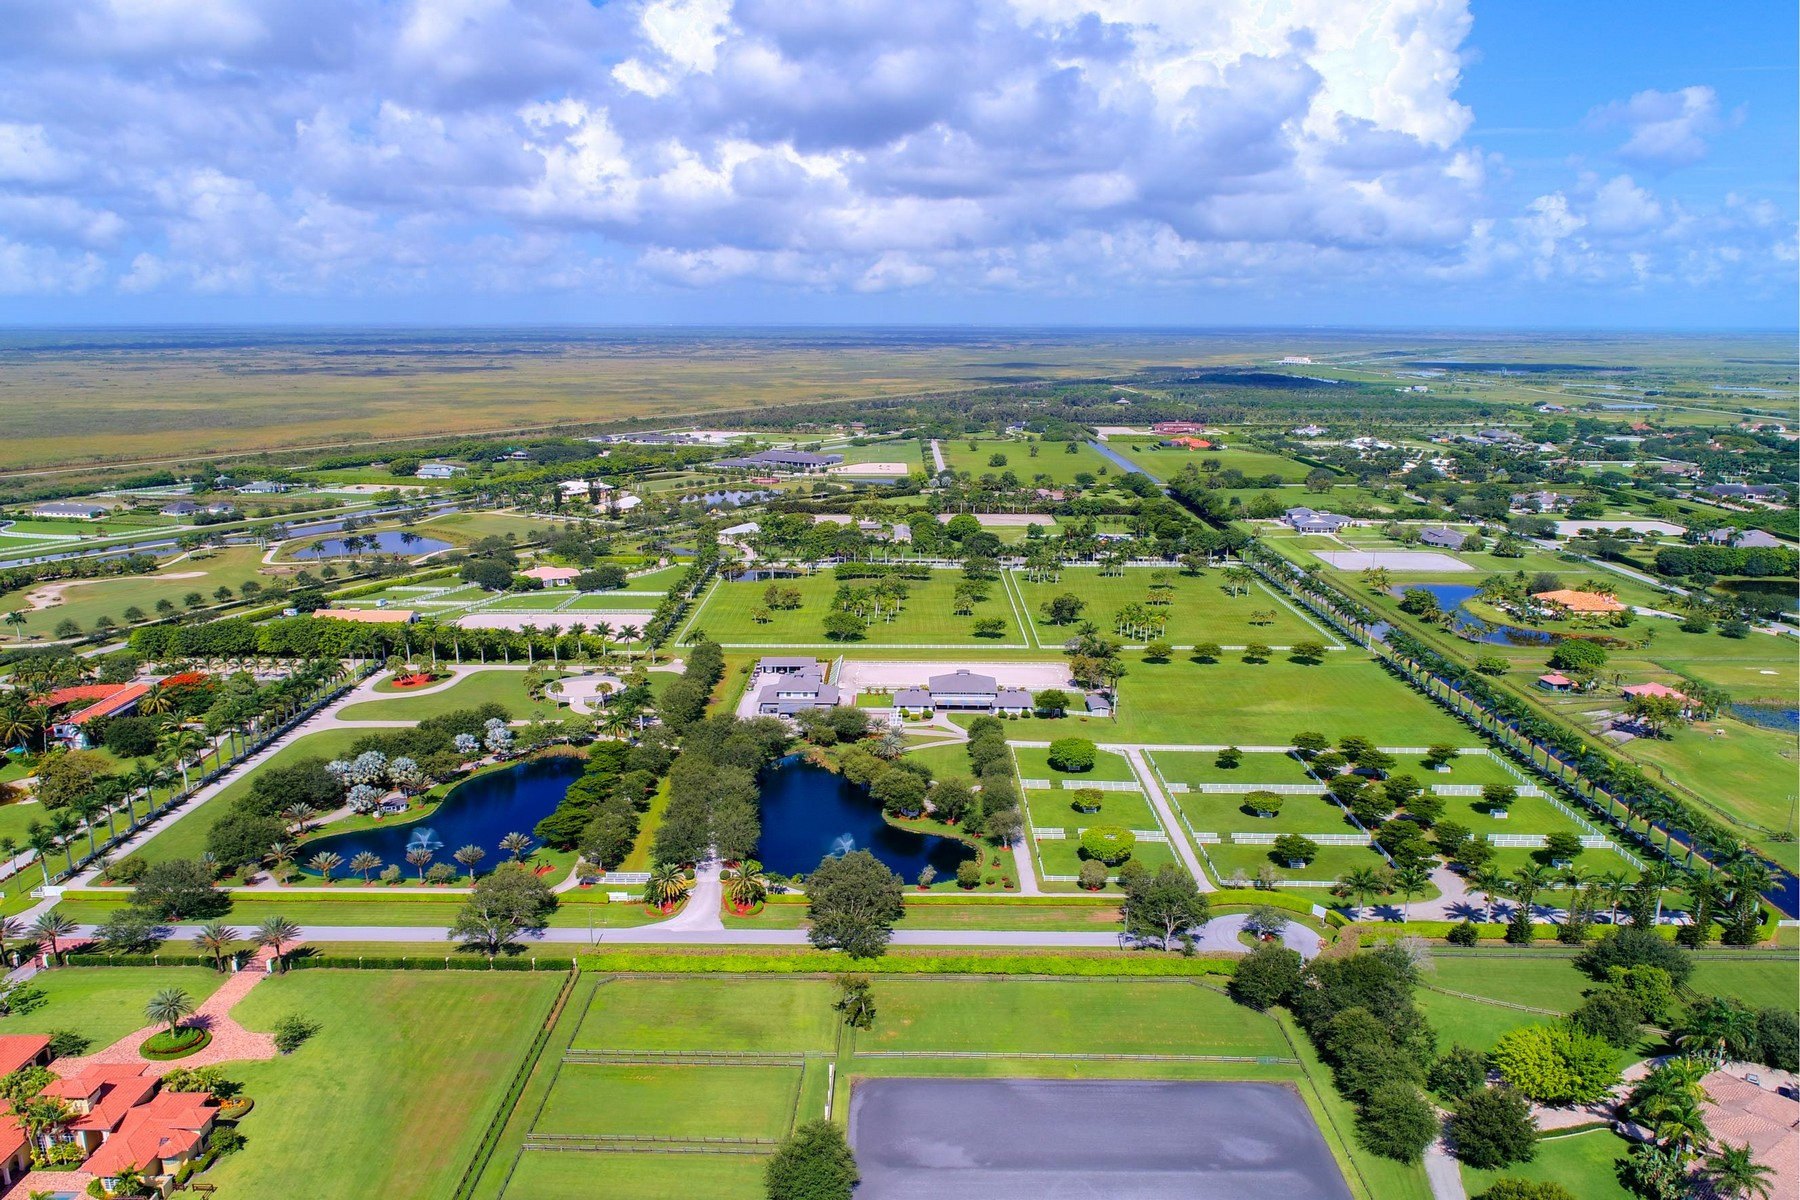 Single Family Home for Sale at Owls Roost Farms 4481 Garden Point Trail, Palm Beach Point, Wellington, Florida, 33414 United States